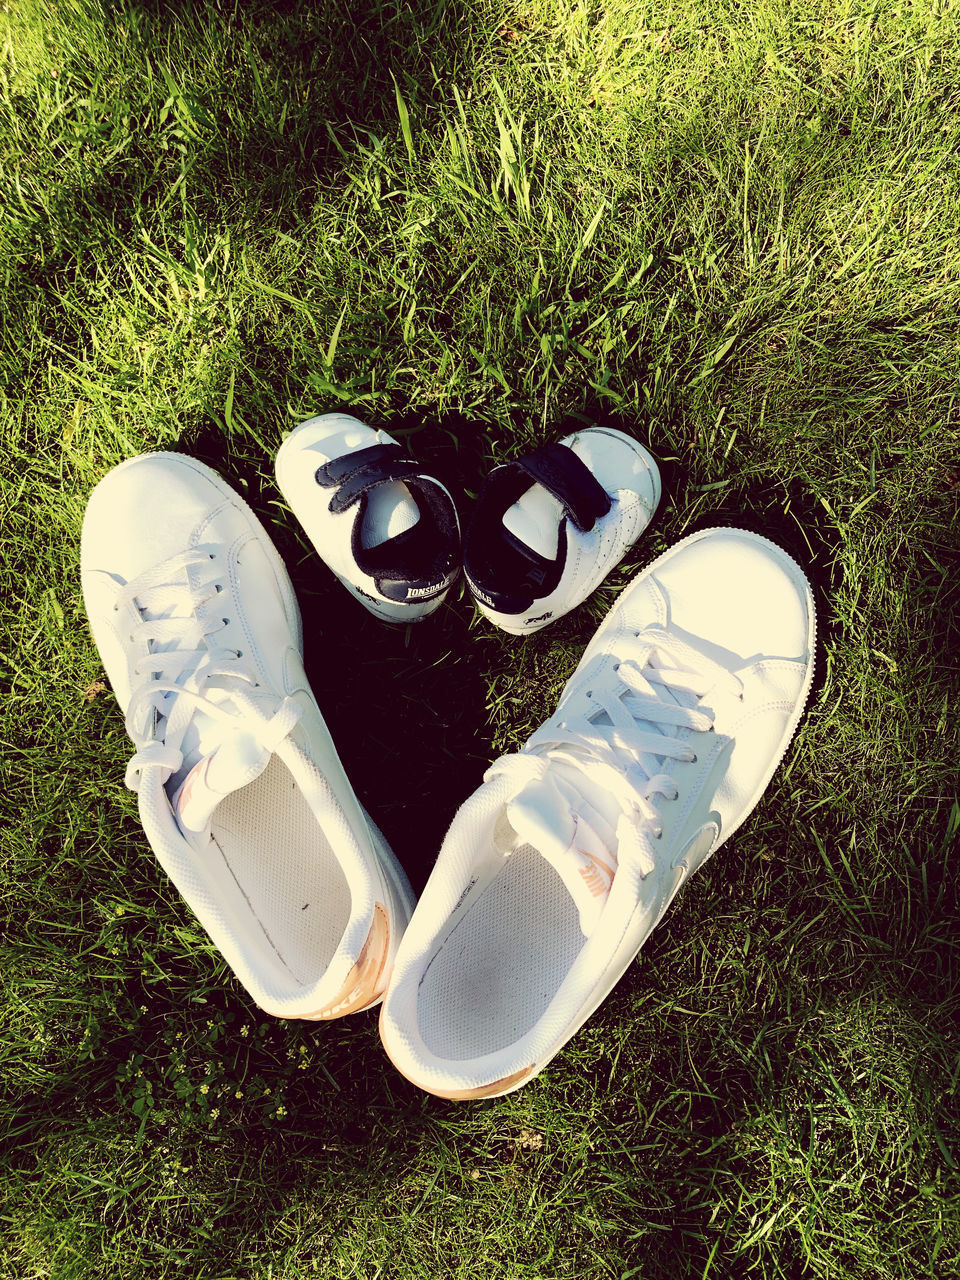 HIGH ANGLE VIEW OF SHOES ON GROUND